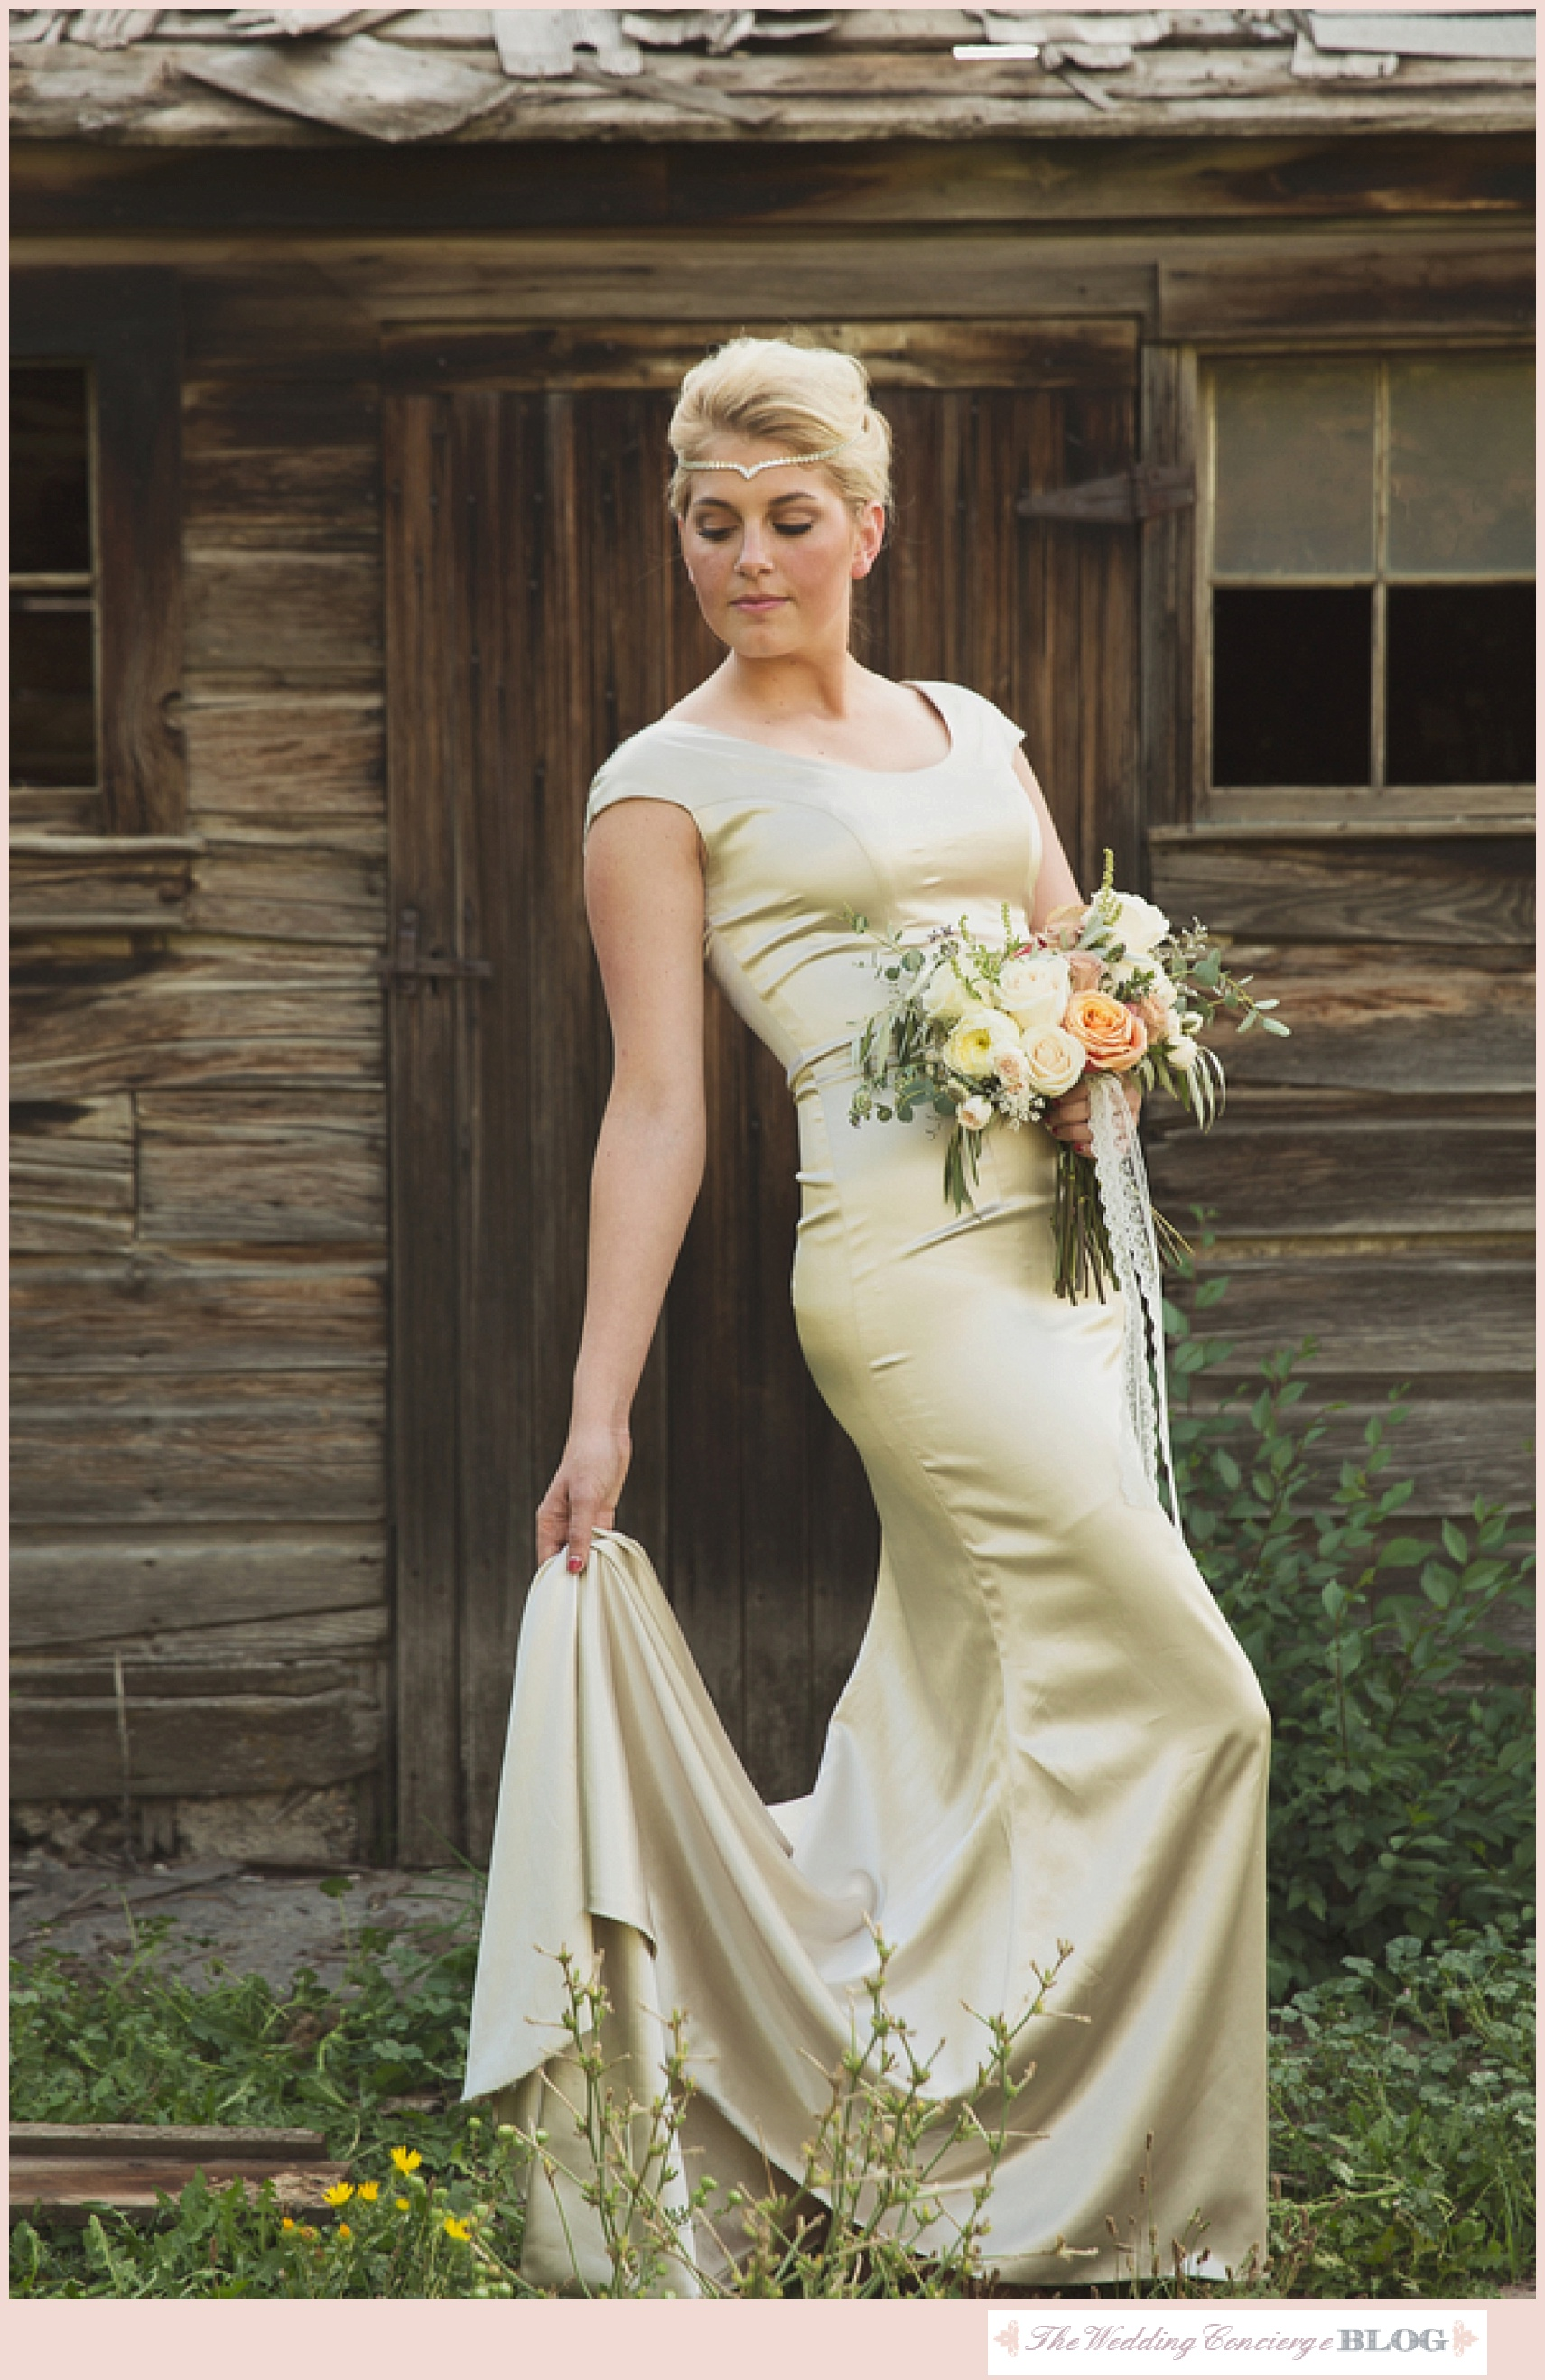 Rustic_Styled_Bridal_Shoot_The_Wedding_Concierge_0046.jpg